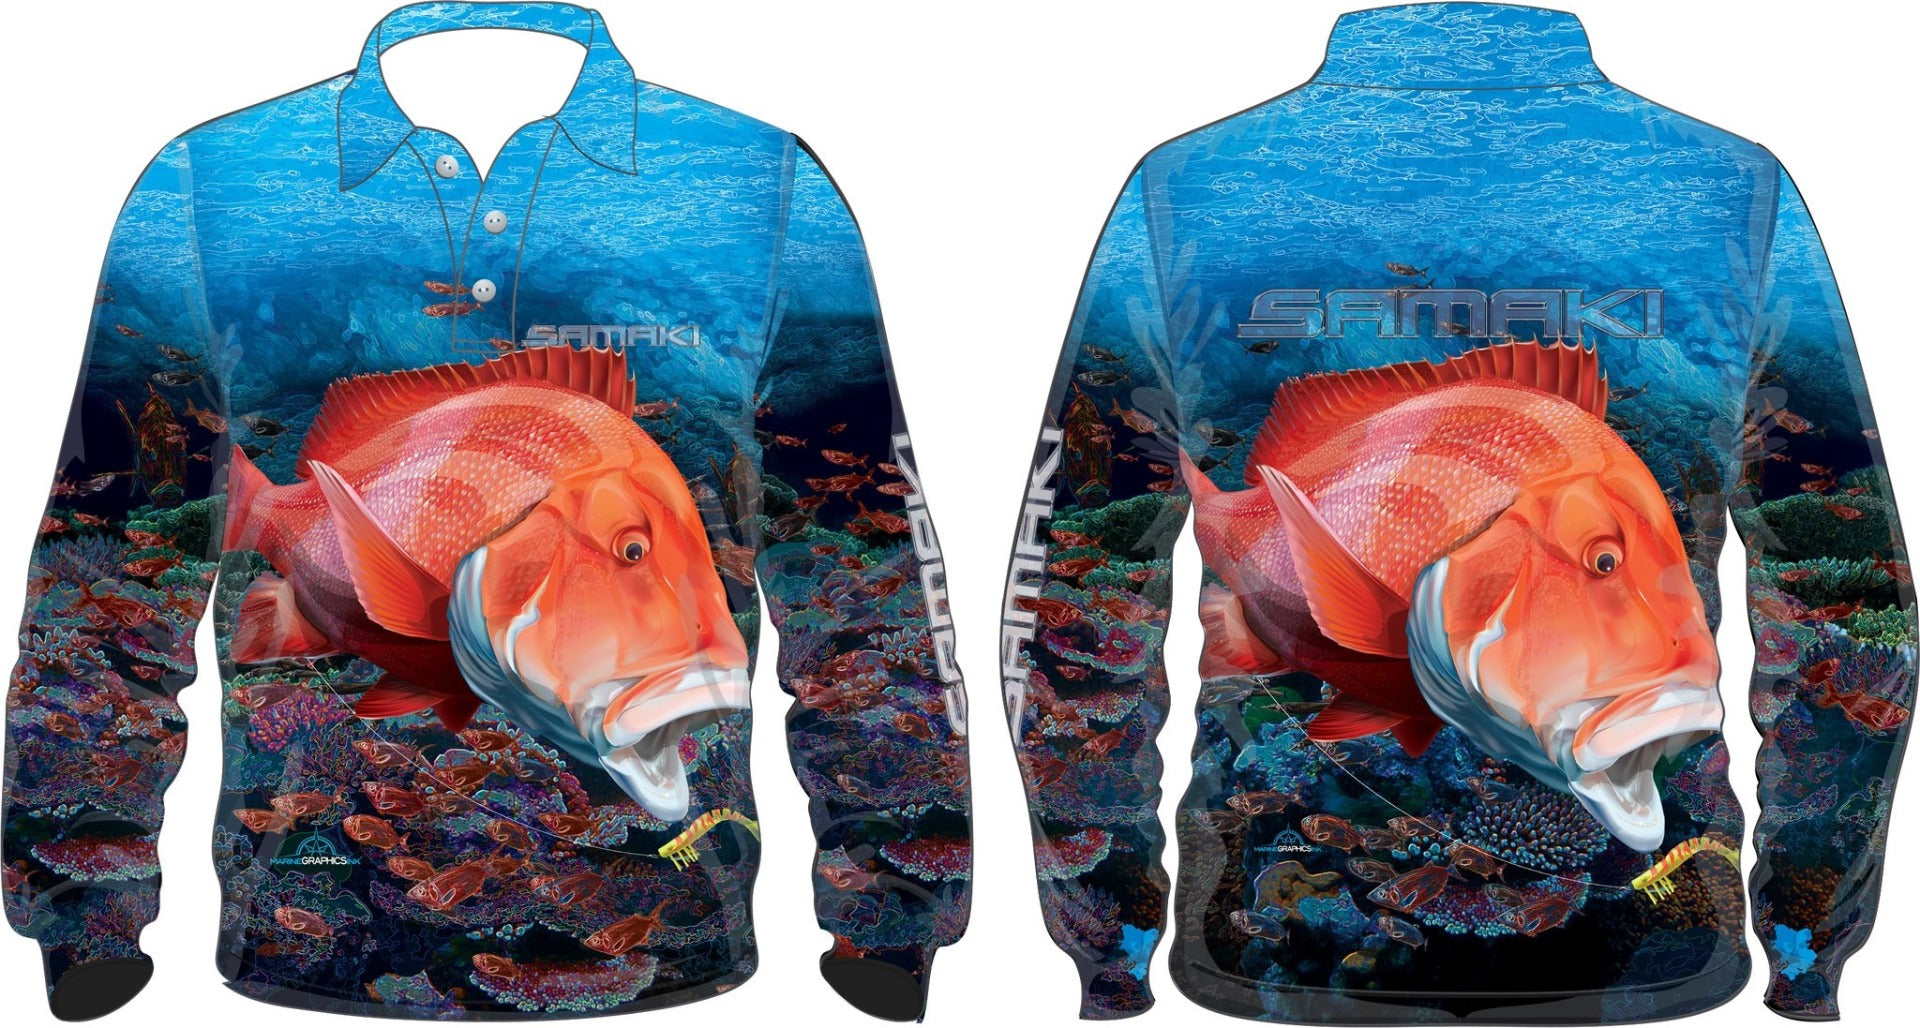 Samaki Red Emperor Long Sleeve Kids Fishing Shirt